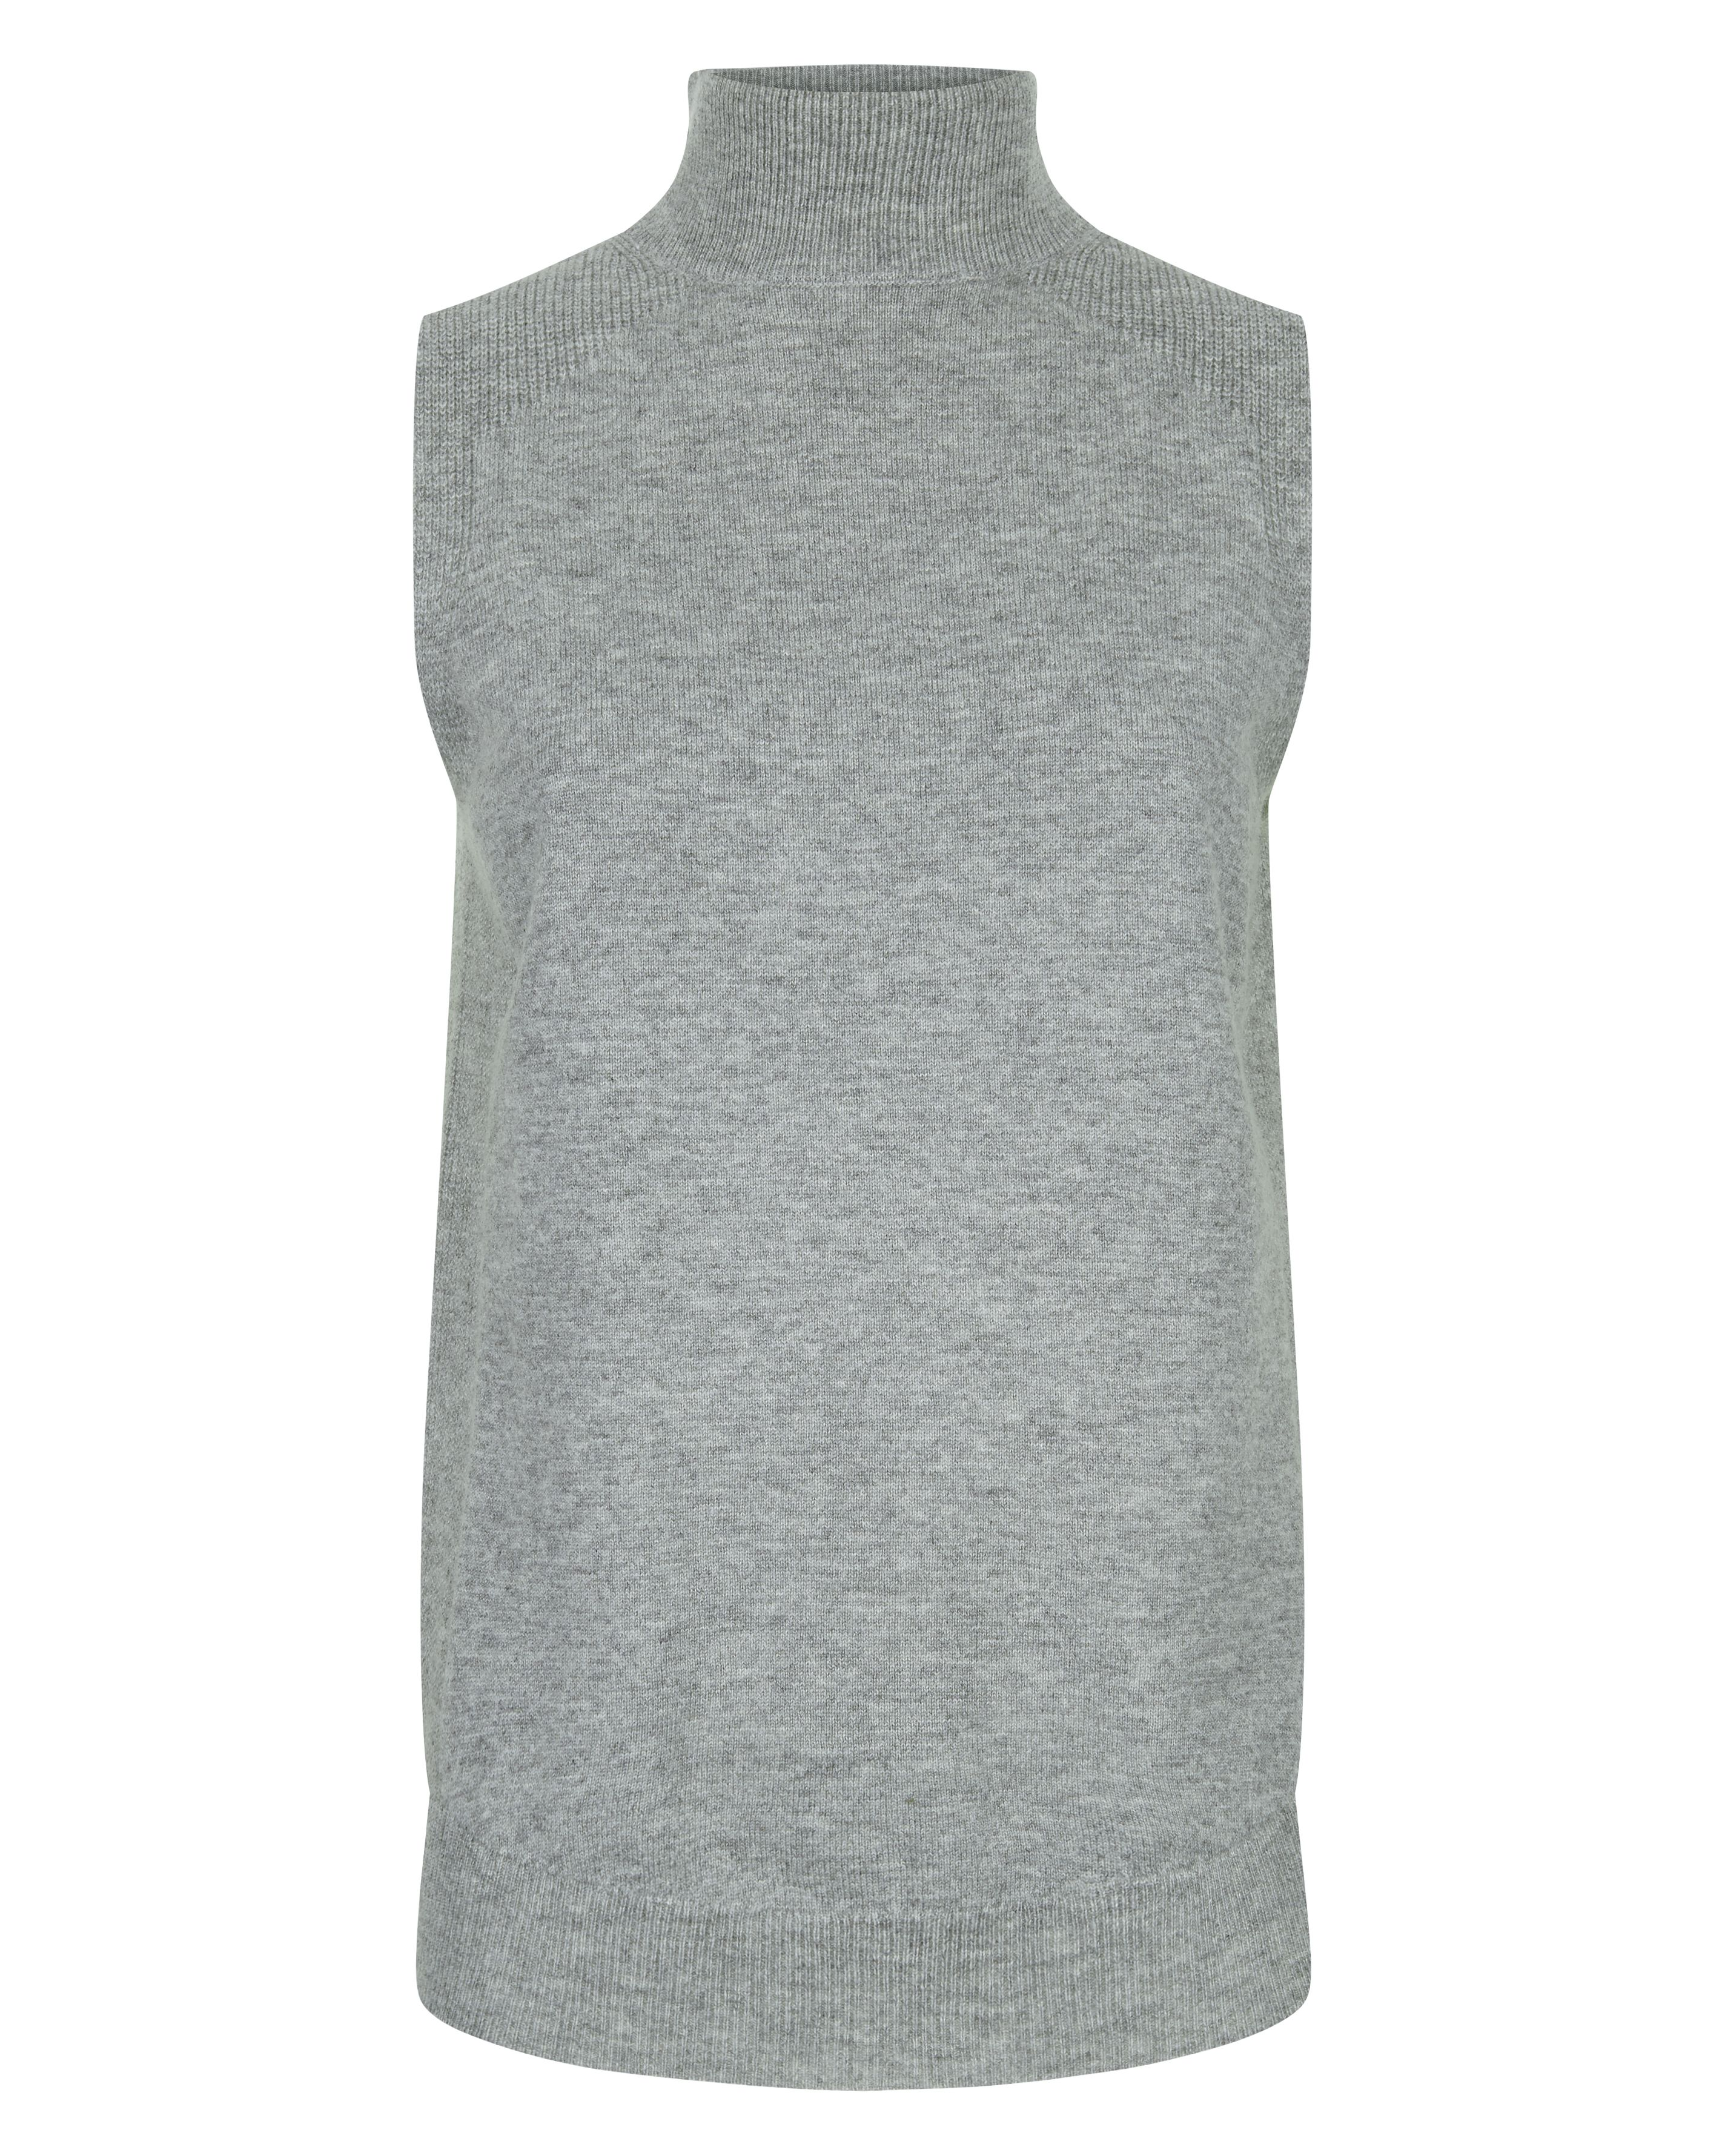 Jaeger Wool Cashmere Turtleneck Top, Grey